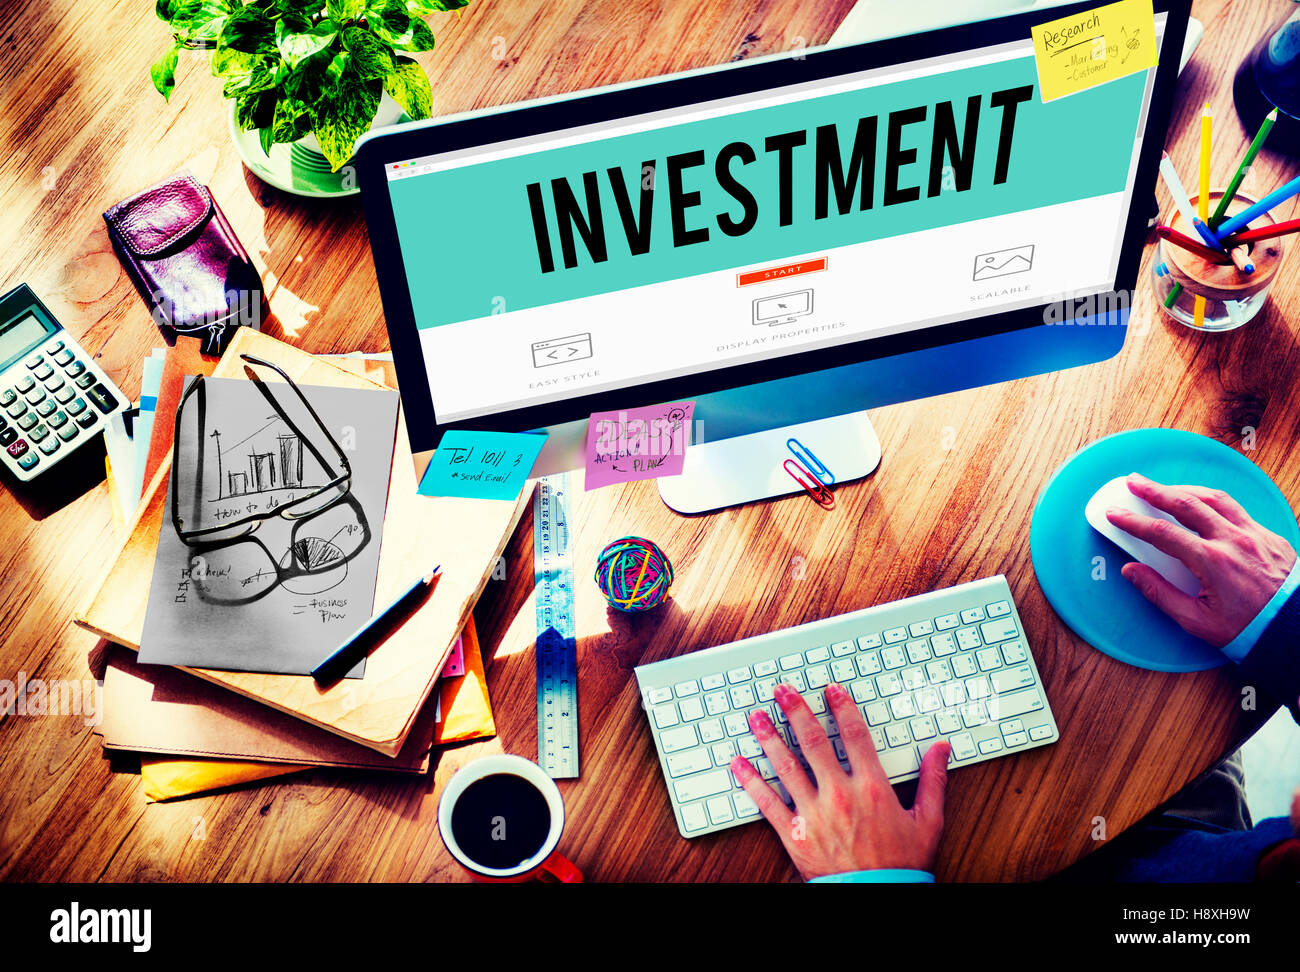 Investment Economy Financial Investing Income Concept - Stock Image